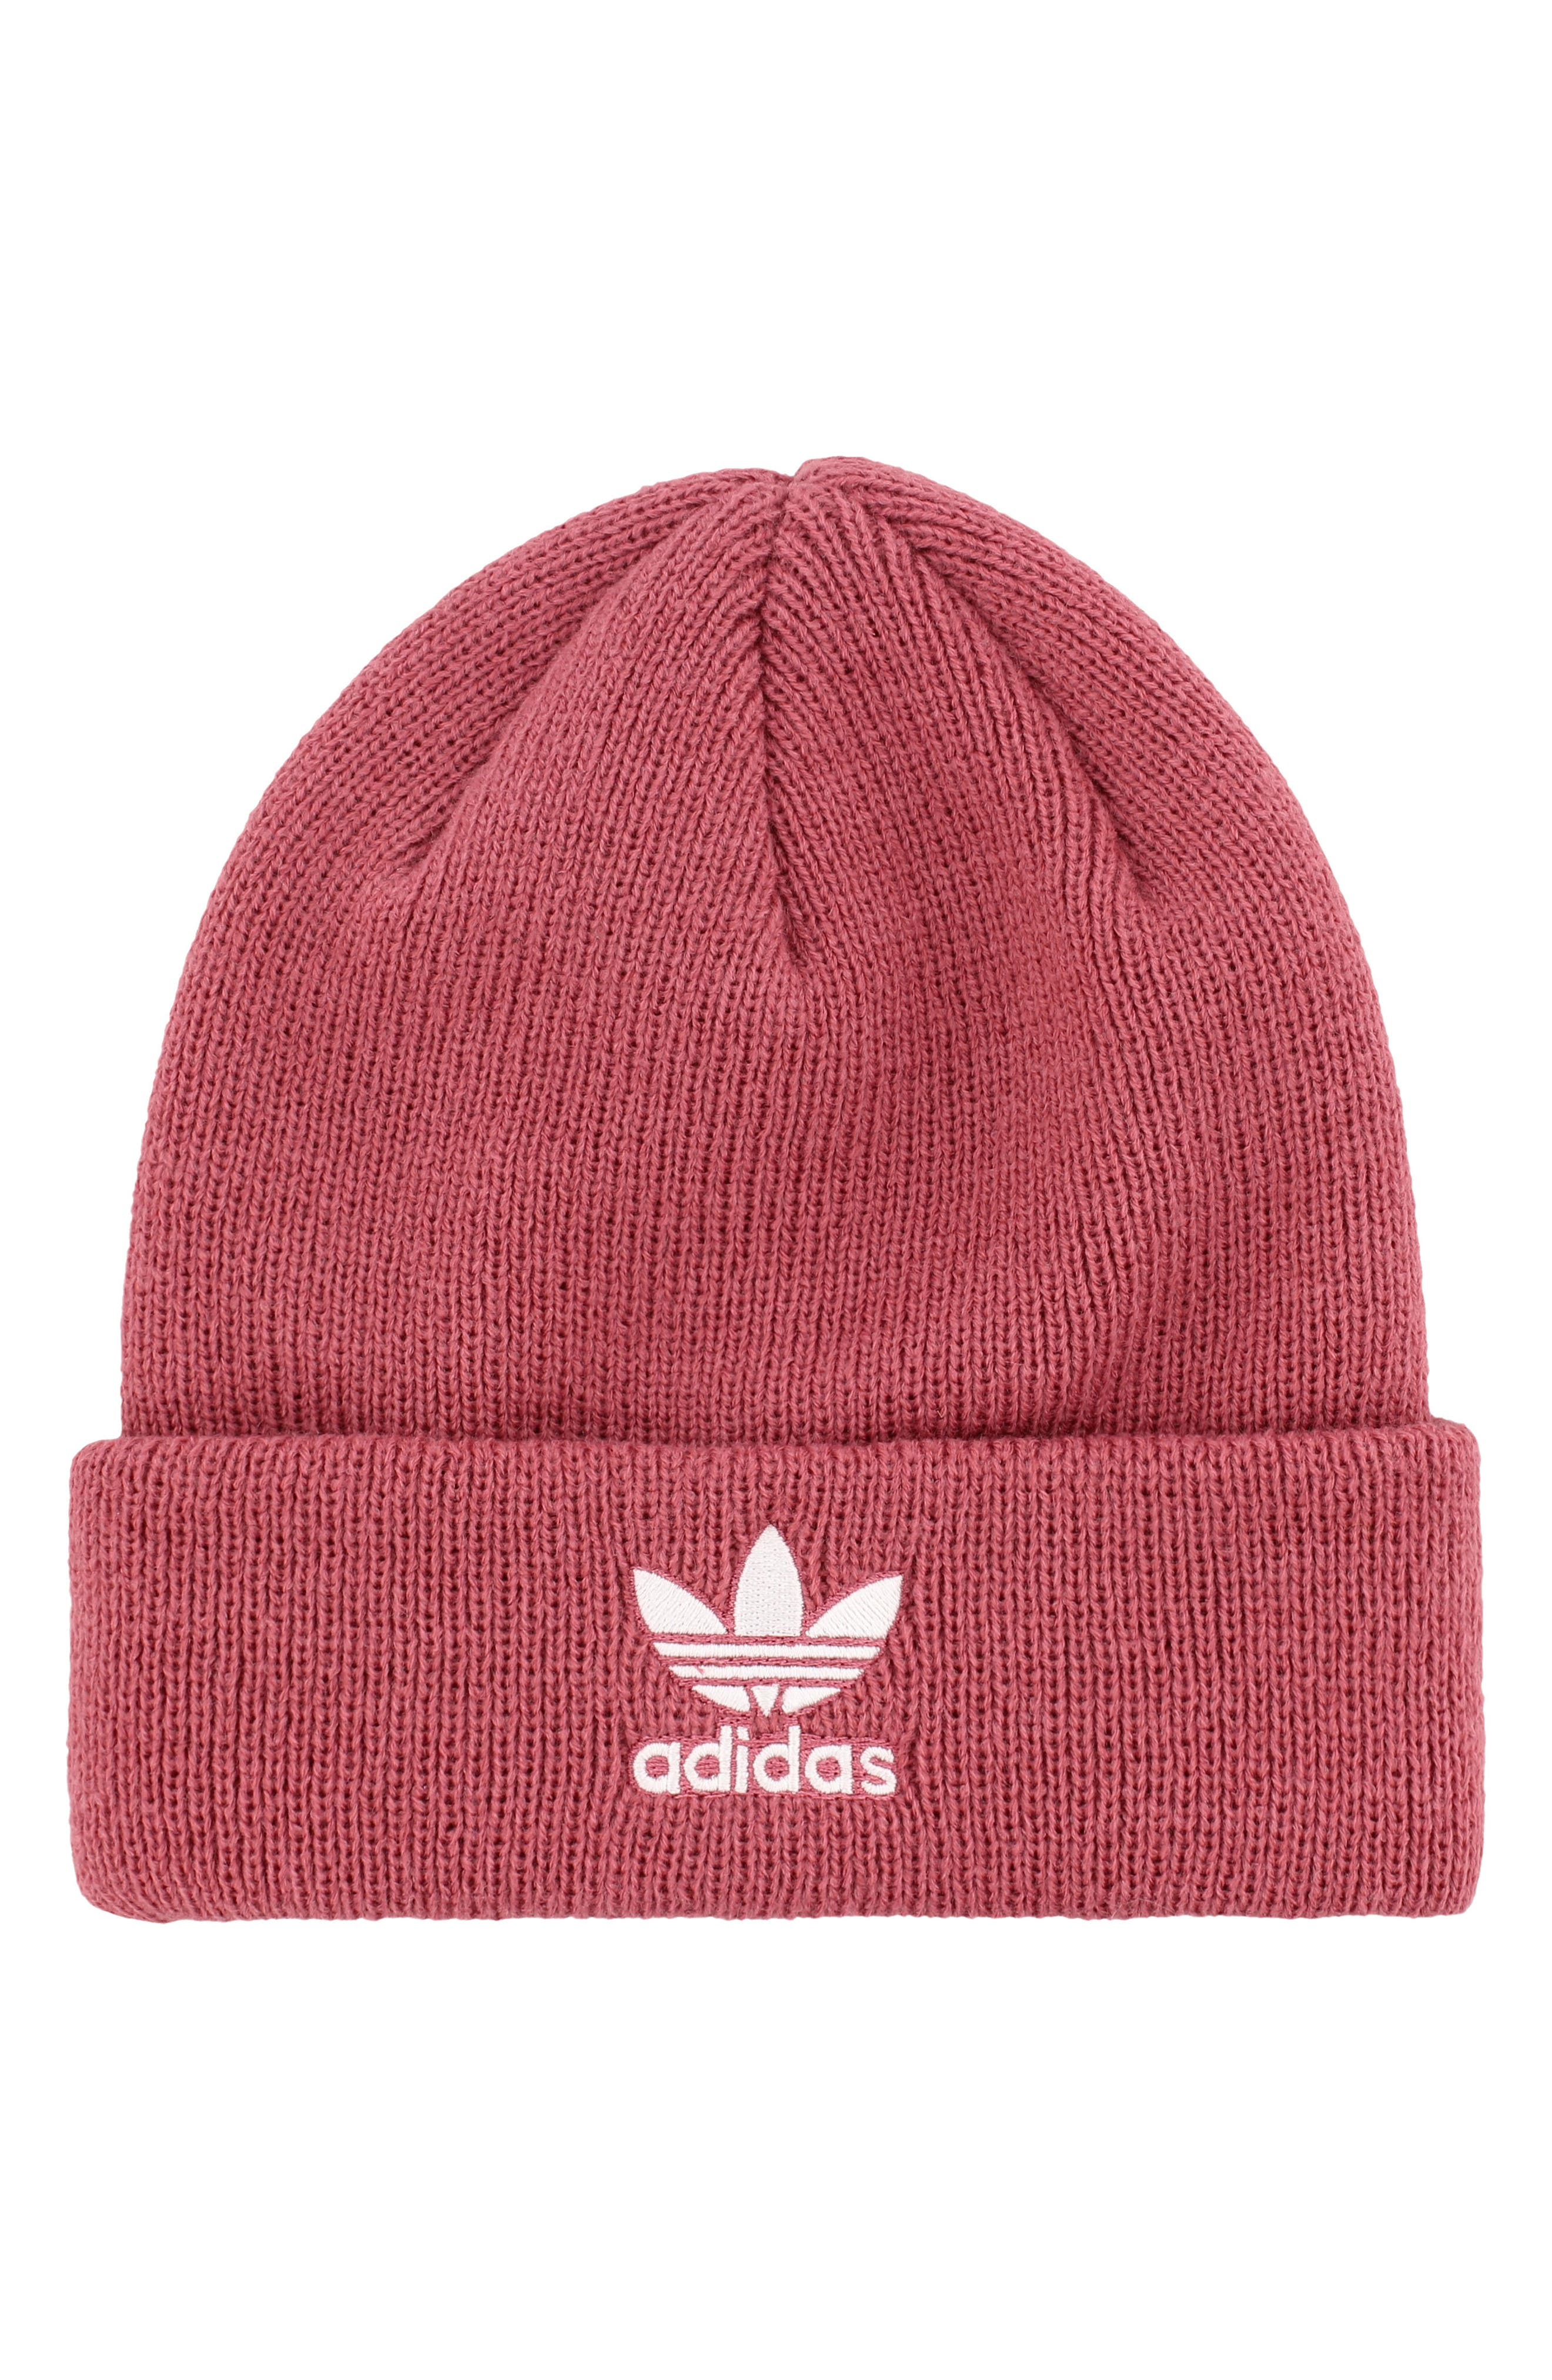 adidas Trefoil Beanie,                             Main thumbnail 1, color,                             TRACE MAROON PINK/ WHITE